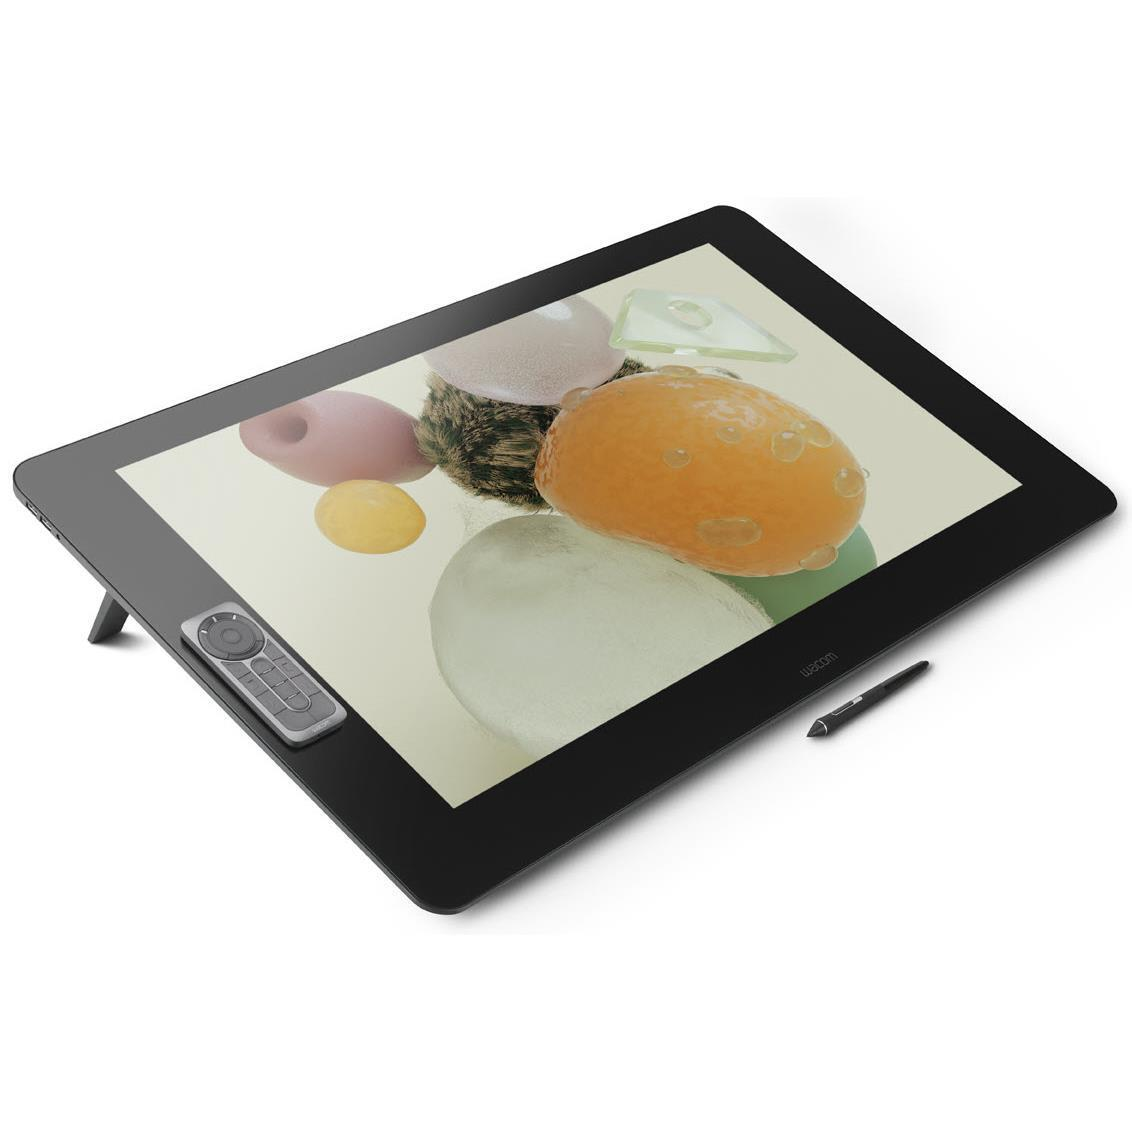 Wacom Cintiq Pro 32″ Pen & Touch 4K LCD Display with Pro Pen 2